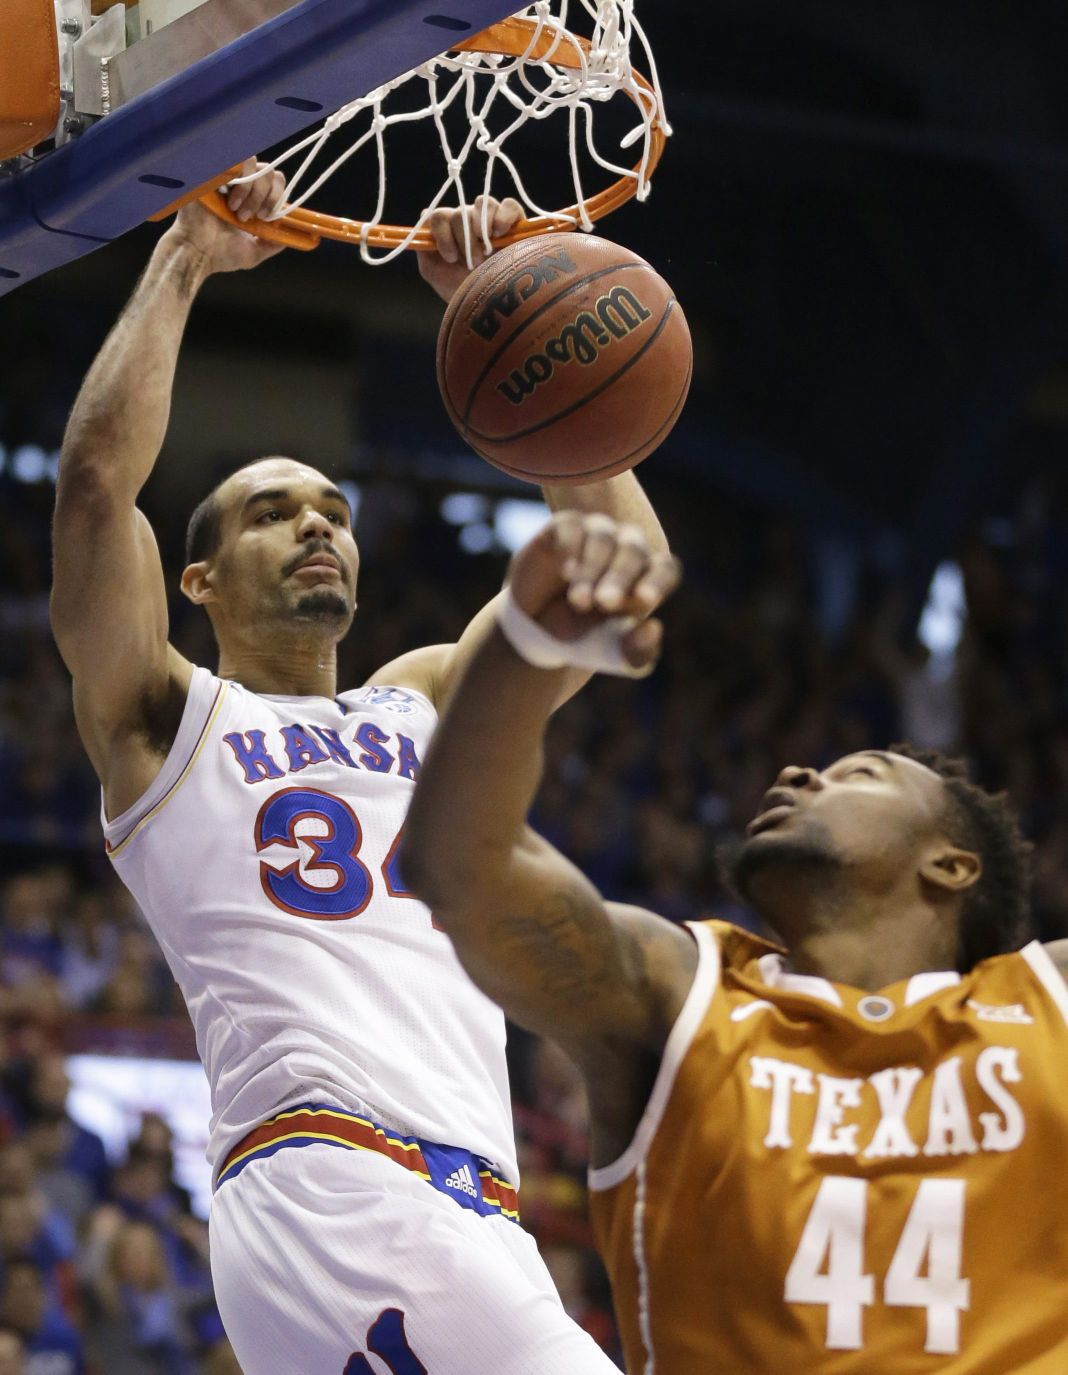 72b8c9d5ced Kansas forward Perry Ellis averaged 13.8 points and 6.9 rebounds last  season. The Jayhawks have won or tied for 11 straight Big 12 titles.